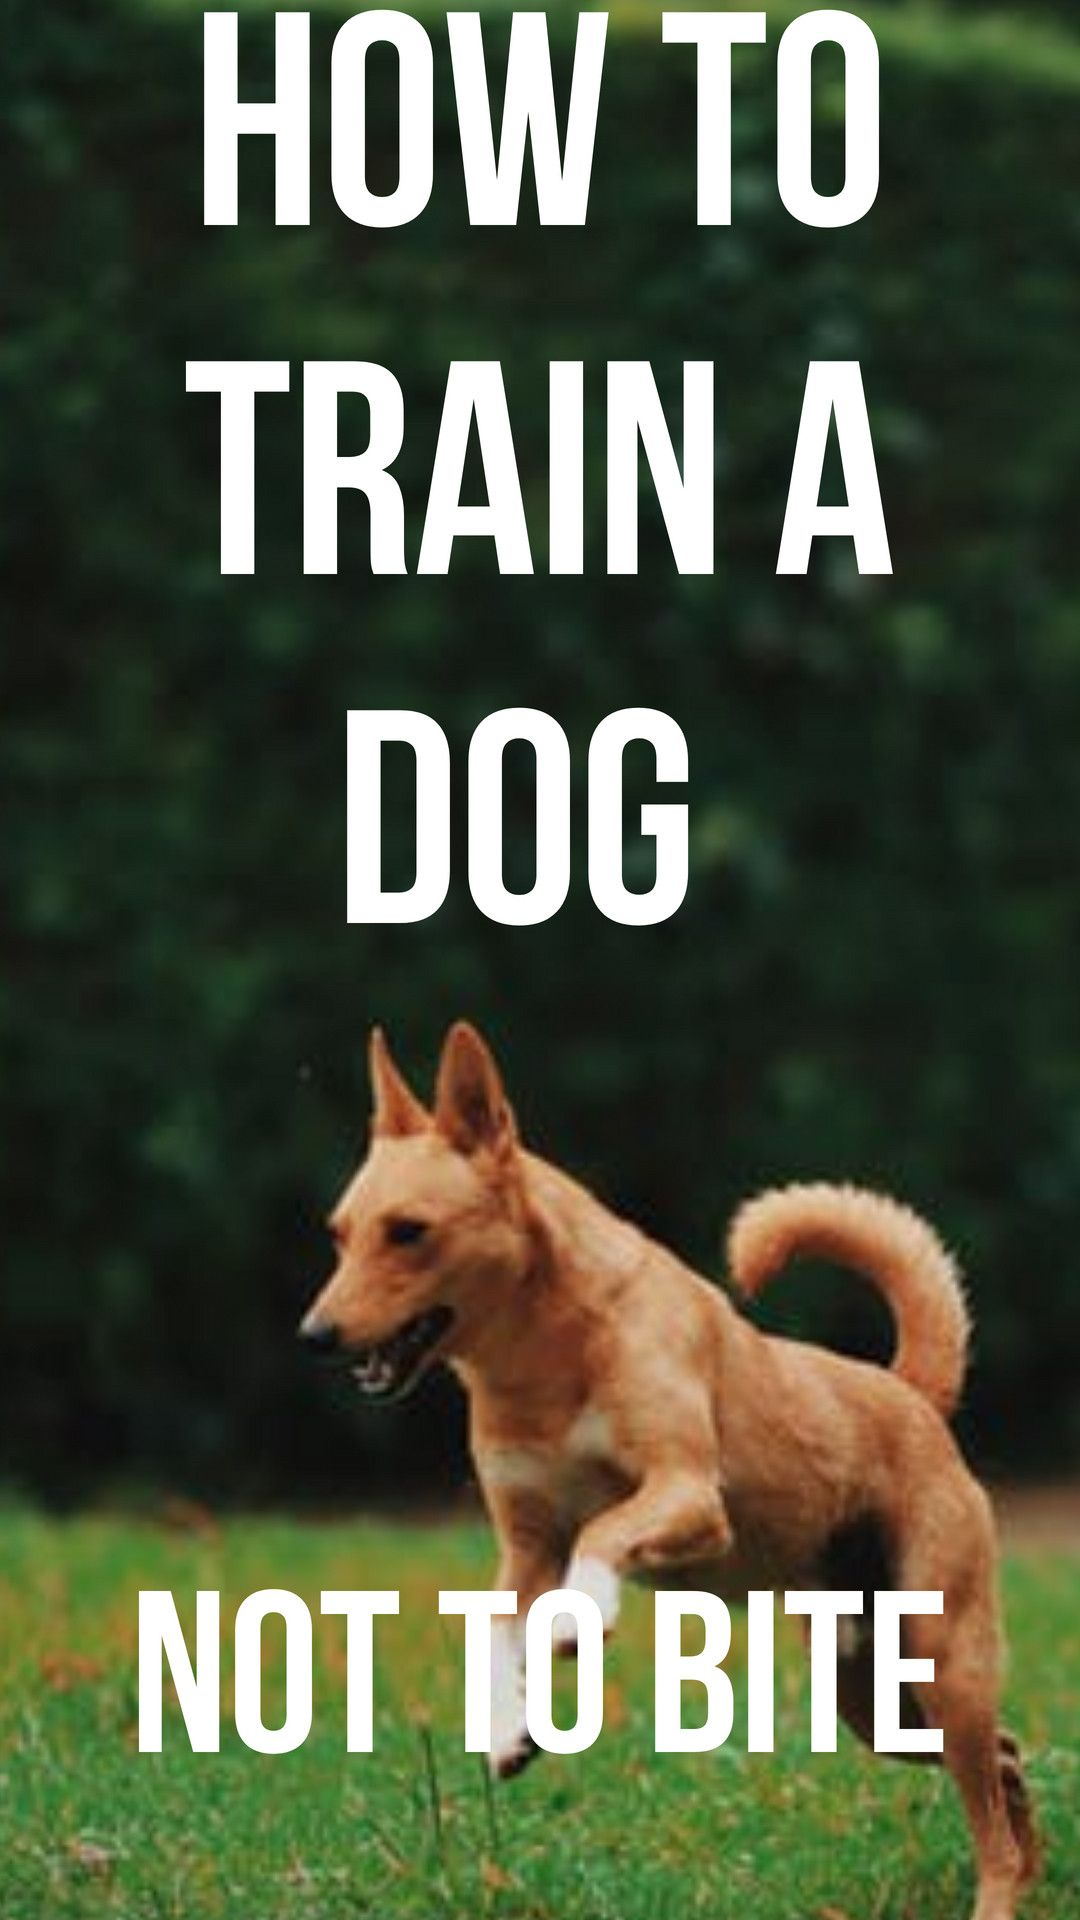 How To Train A Dog Not To Bite Very Cute Dogs Dogs Cute Dog